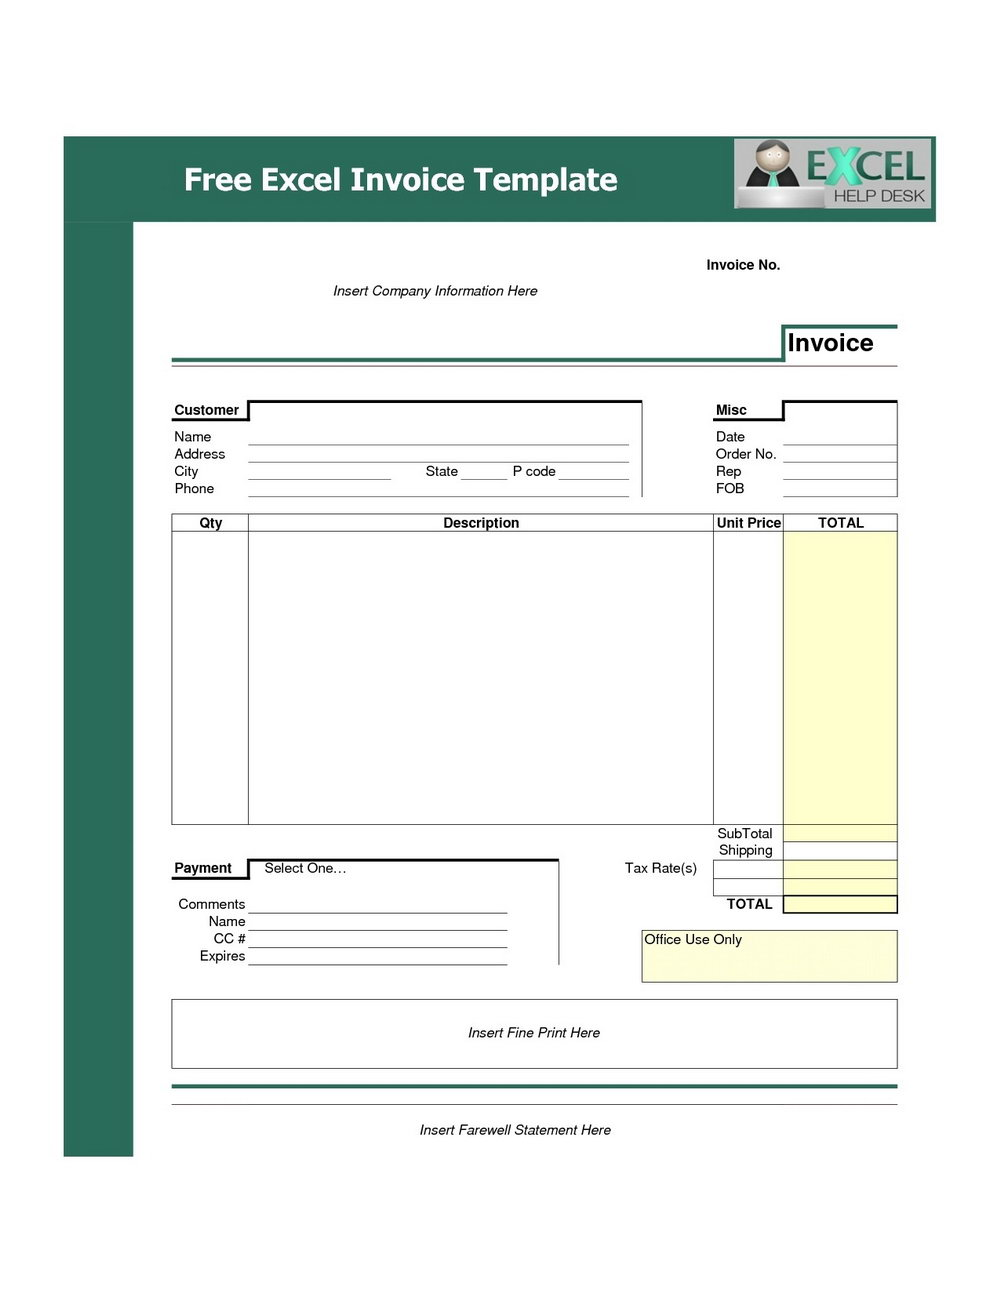 Free Editable Invoice Template